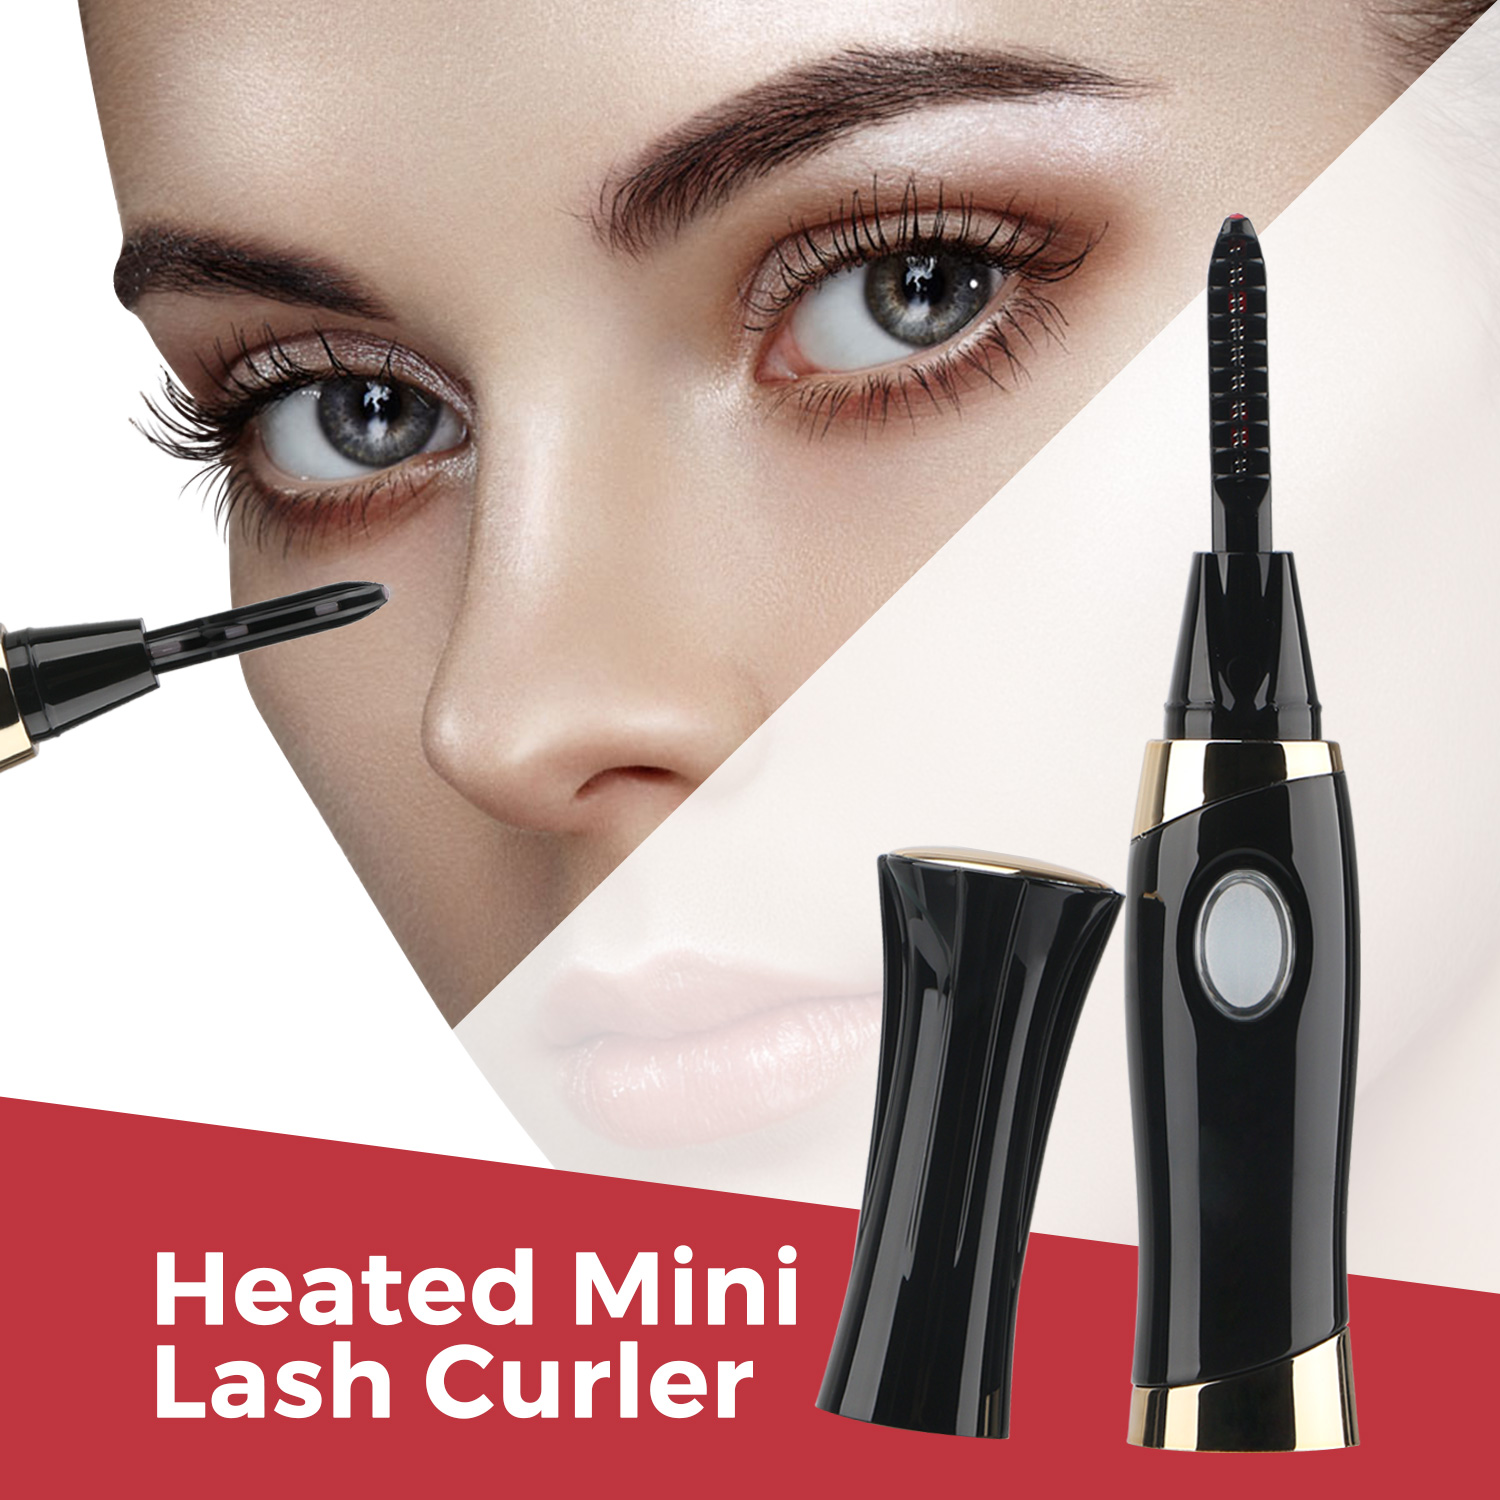 Segbeauty Professional Electric Heated Eyelash Curler Wand